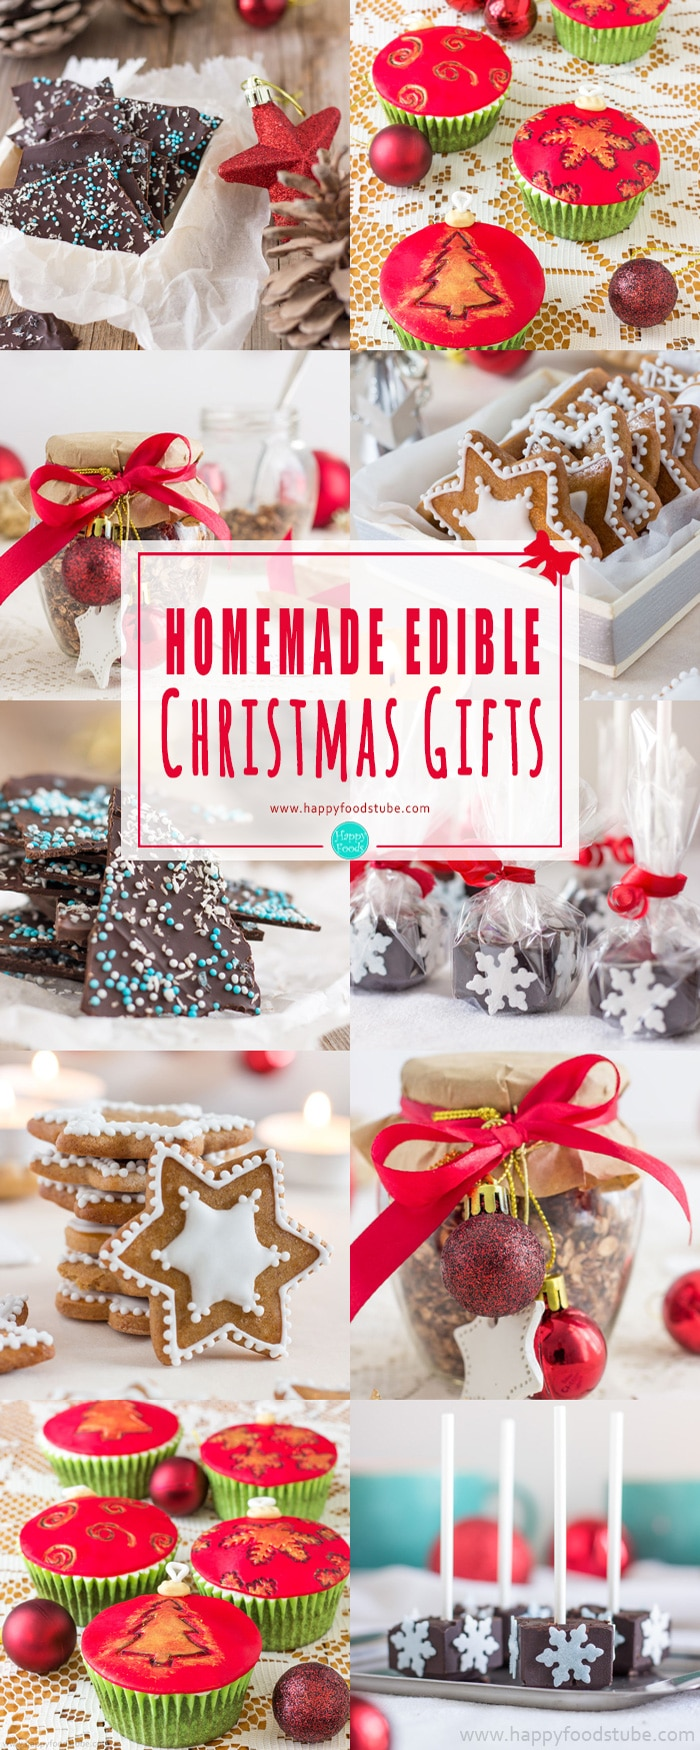 Are you looking for Homemade Edible Christmas gifts? These sweet treats wrapped in festive packaging make great gifts for your family & friends! | happyfoodstube.com